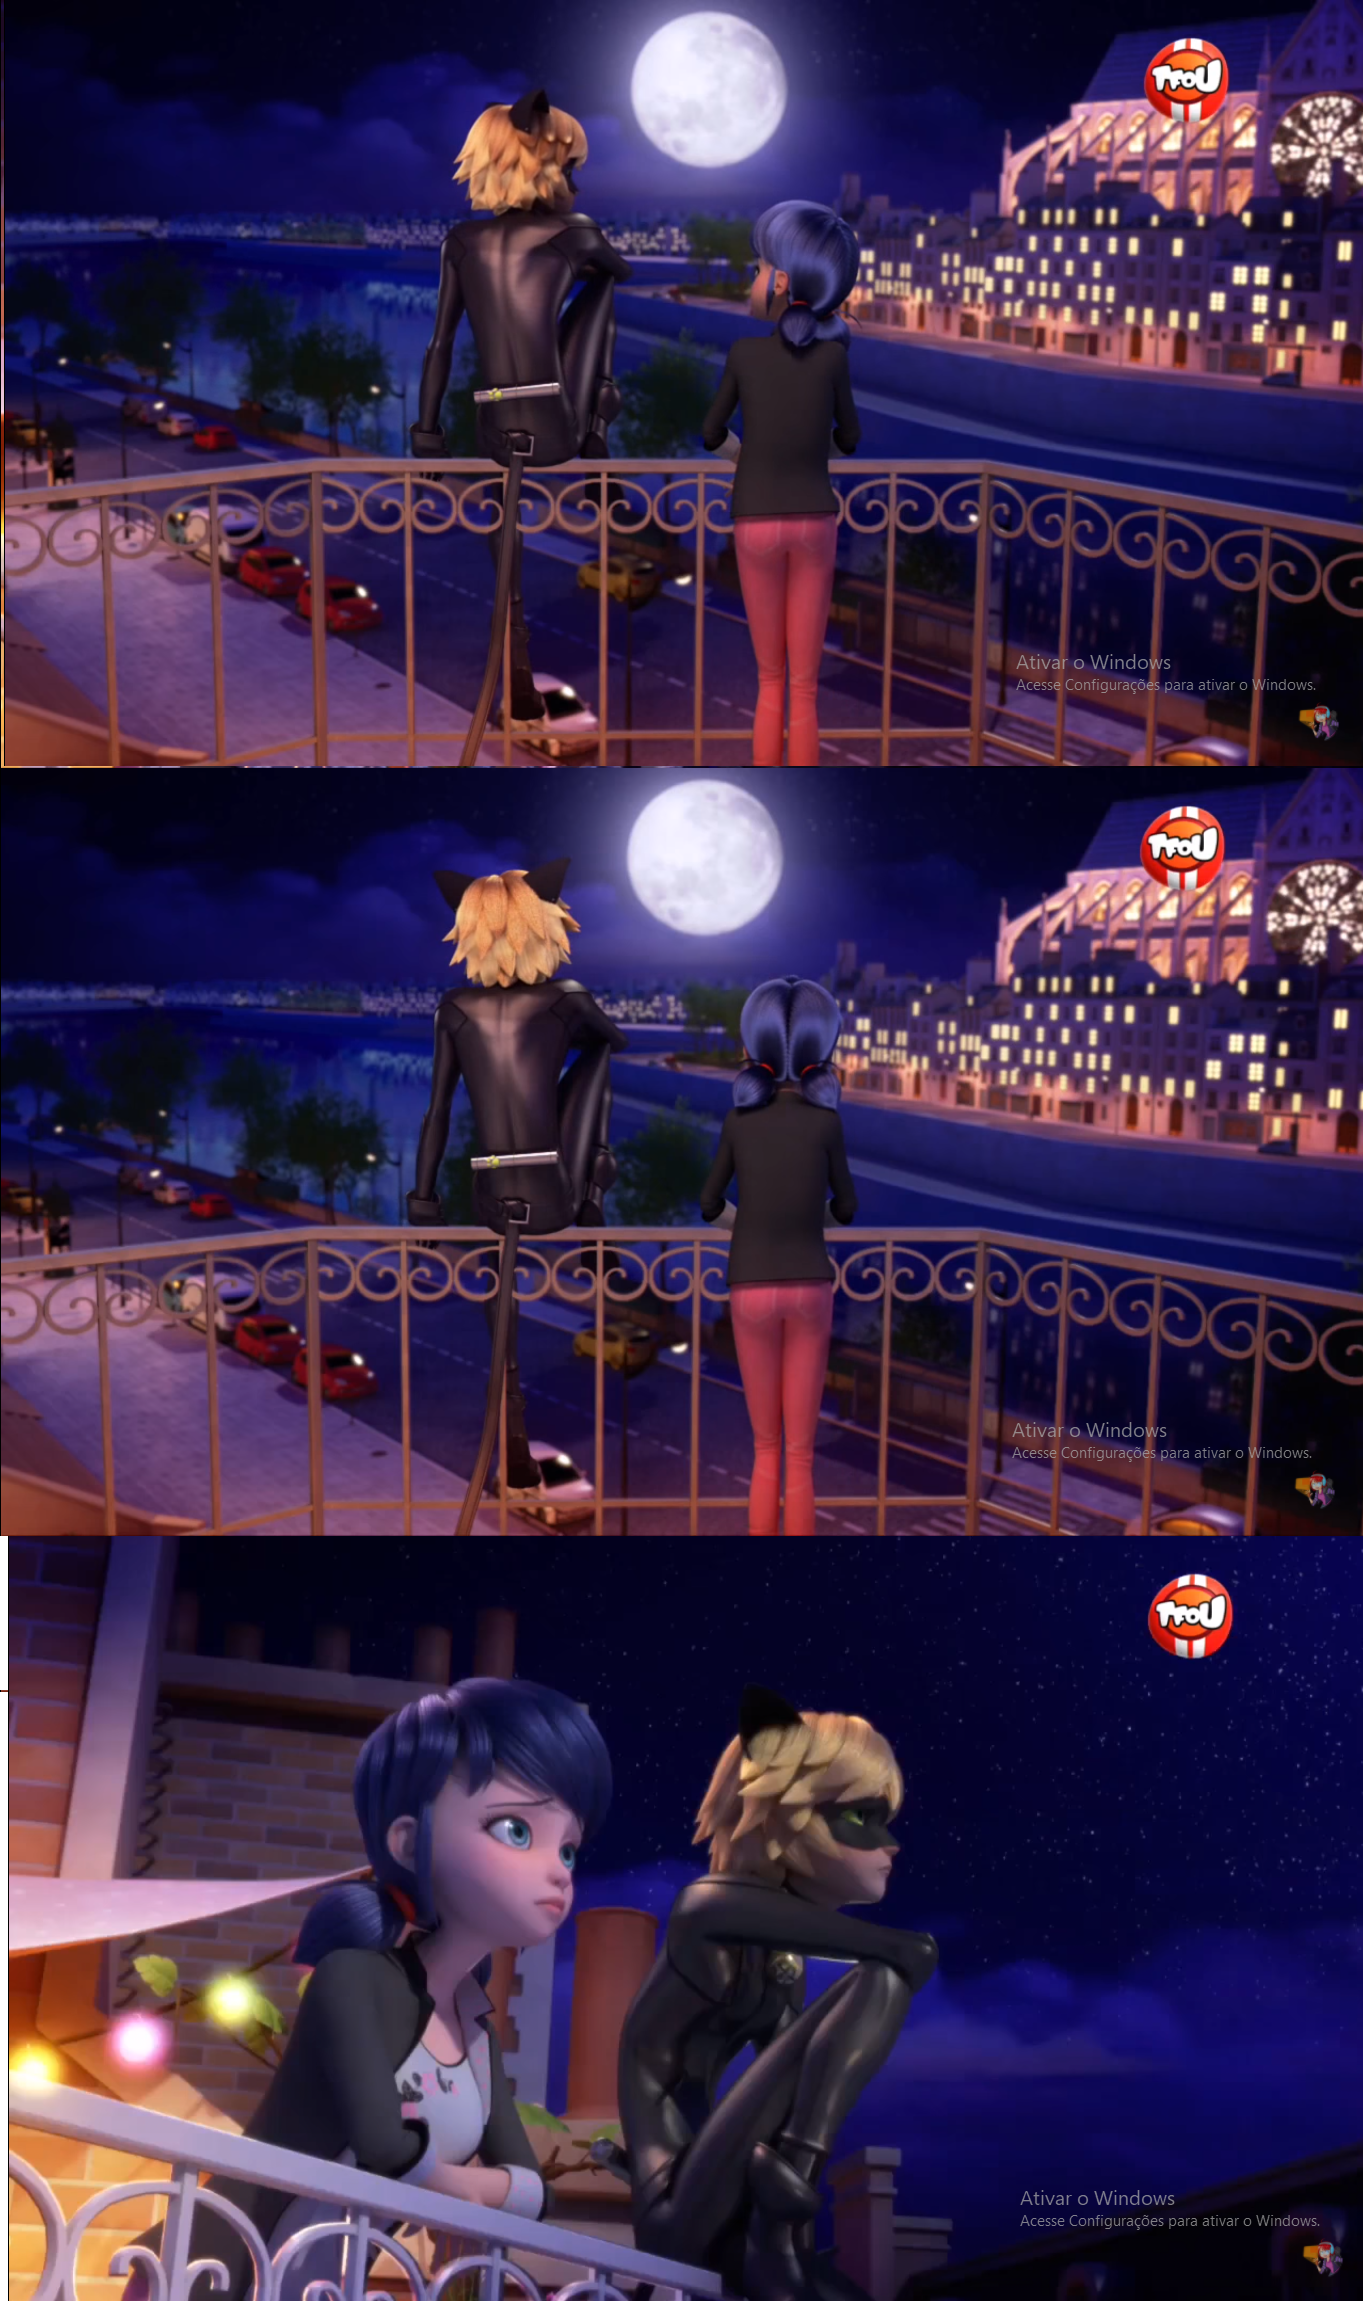 Oblivion Iphone Wallpaper Marinette And Chat Noir Marichat Moment By S02e09